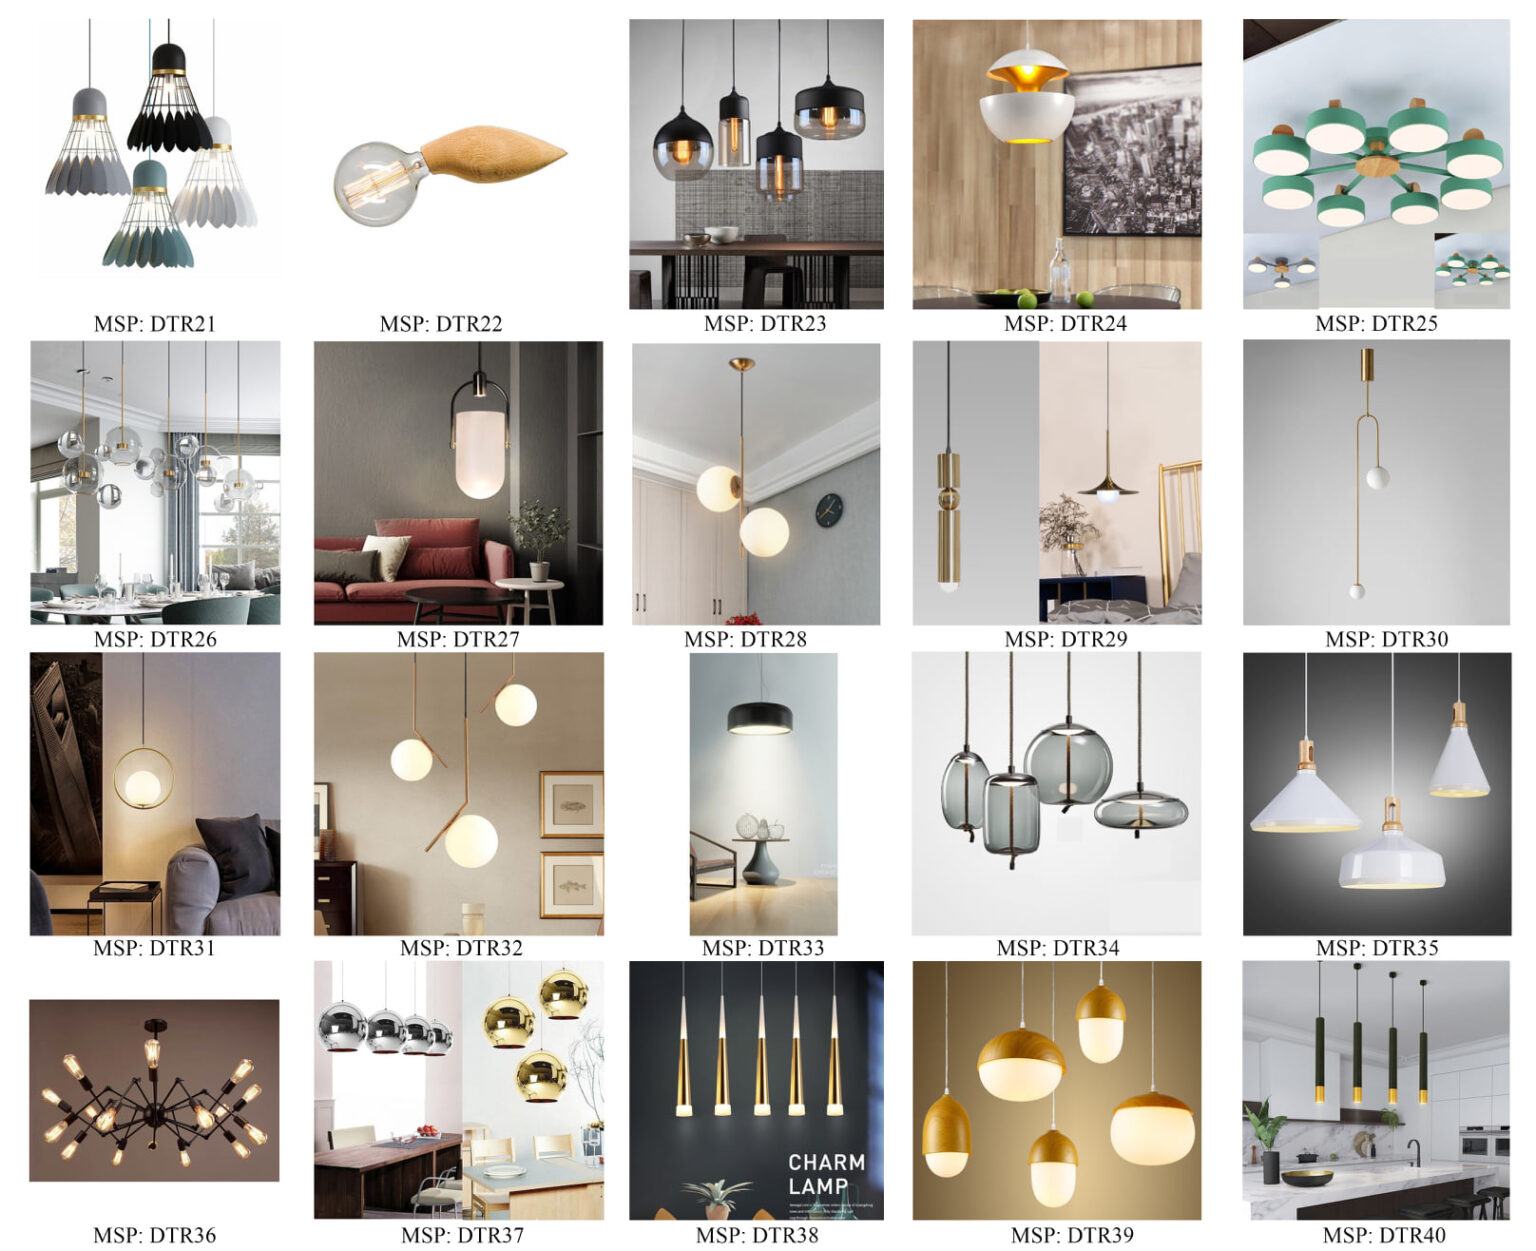 2829.Ceiling Lights Collection Sketchup File free download by Ma But 4 1536x1251 1